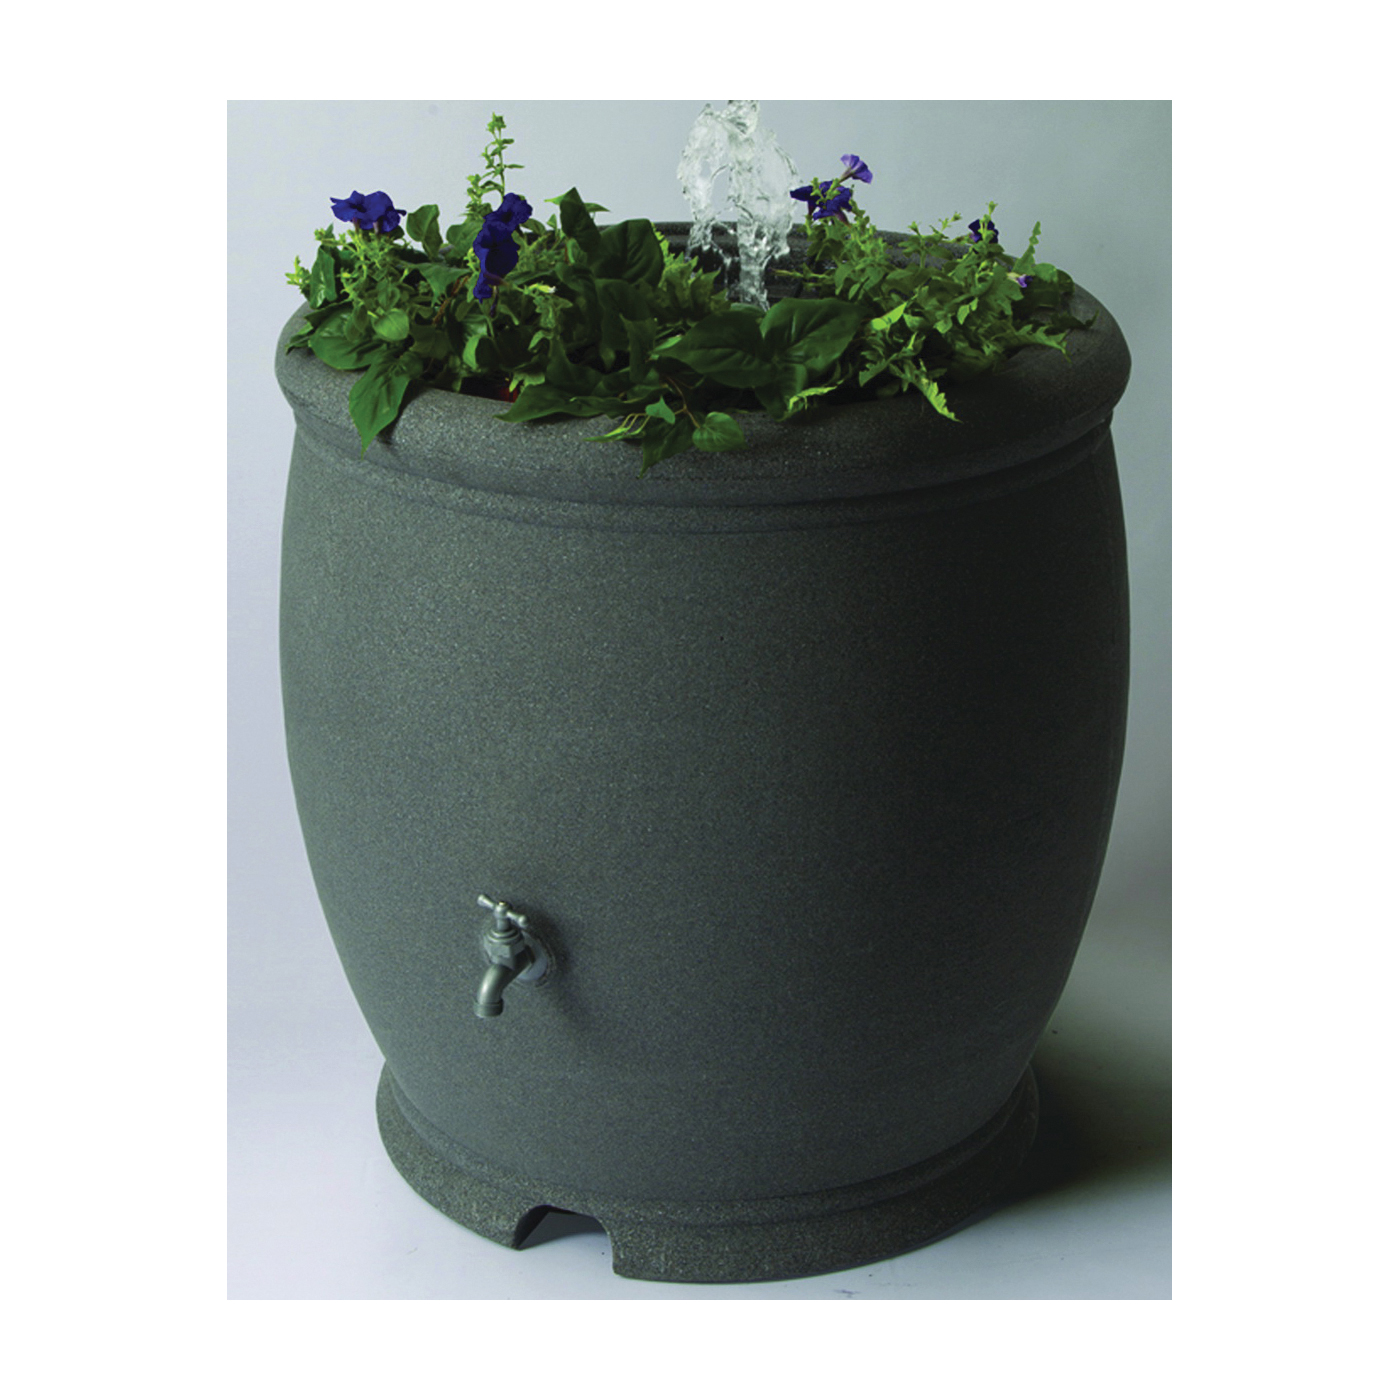 Picture of Algreen 85301 Rain Barrel, 100 gal Capacity, Brass, Charcoal